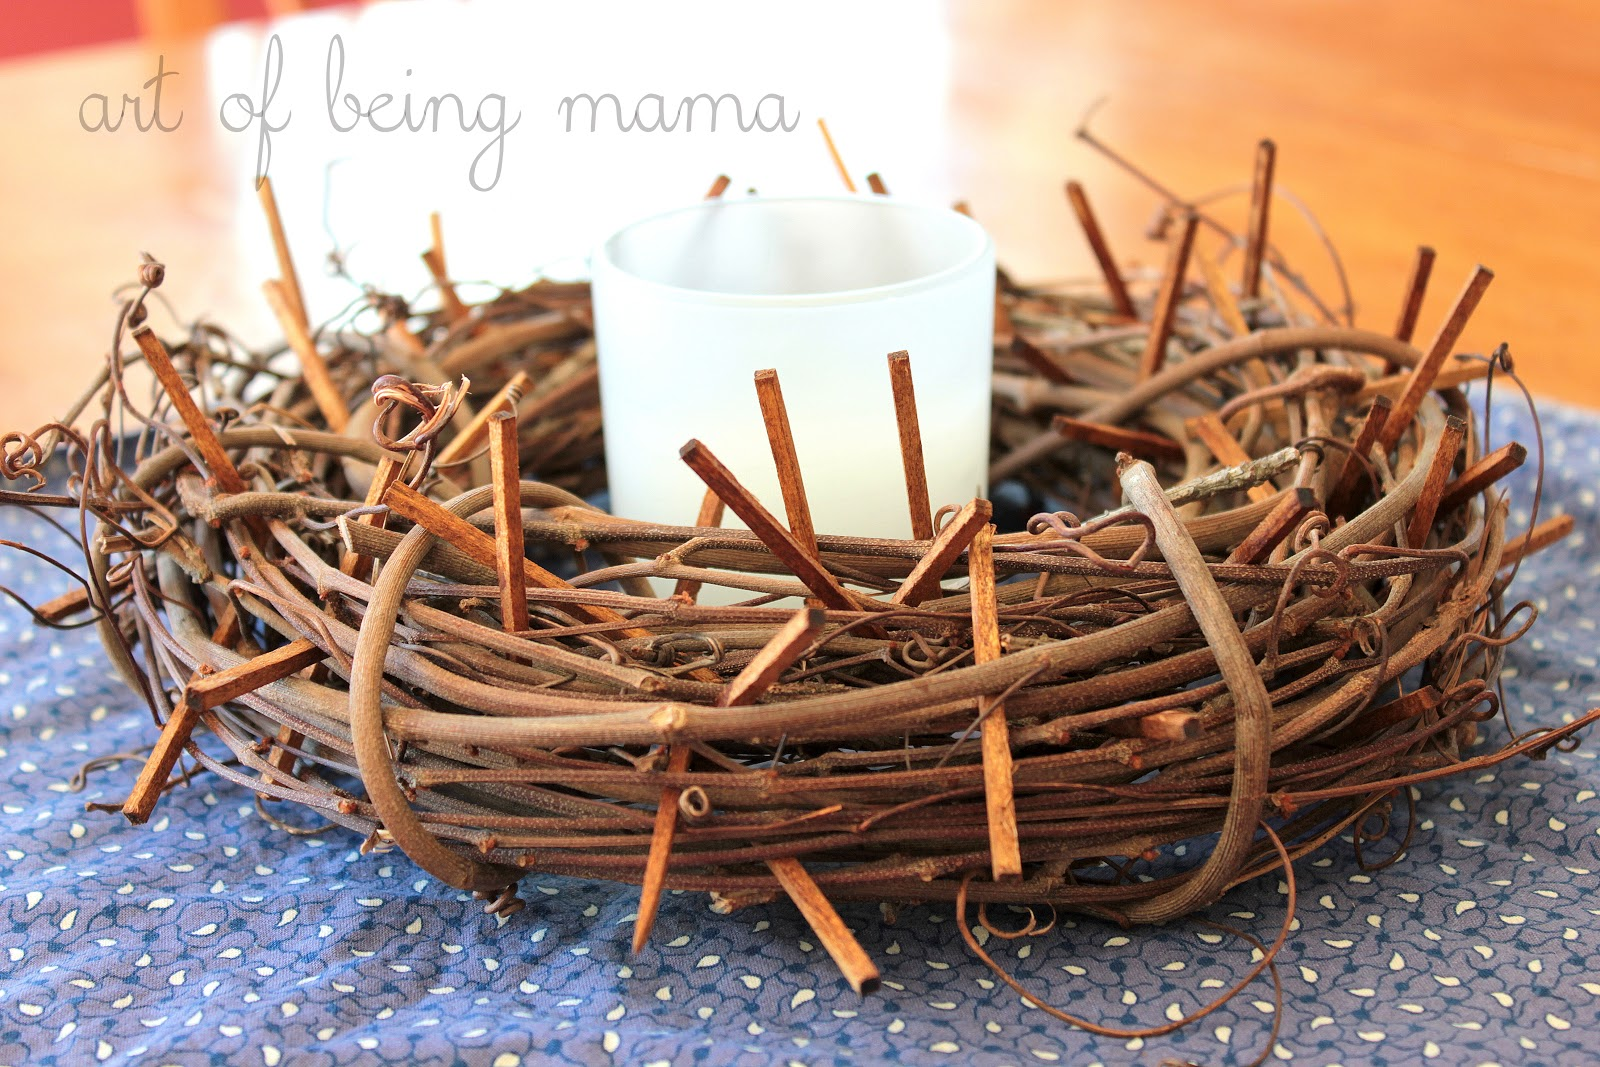 how to make crown of thorns tramp art